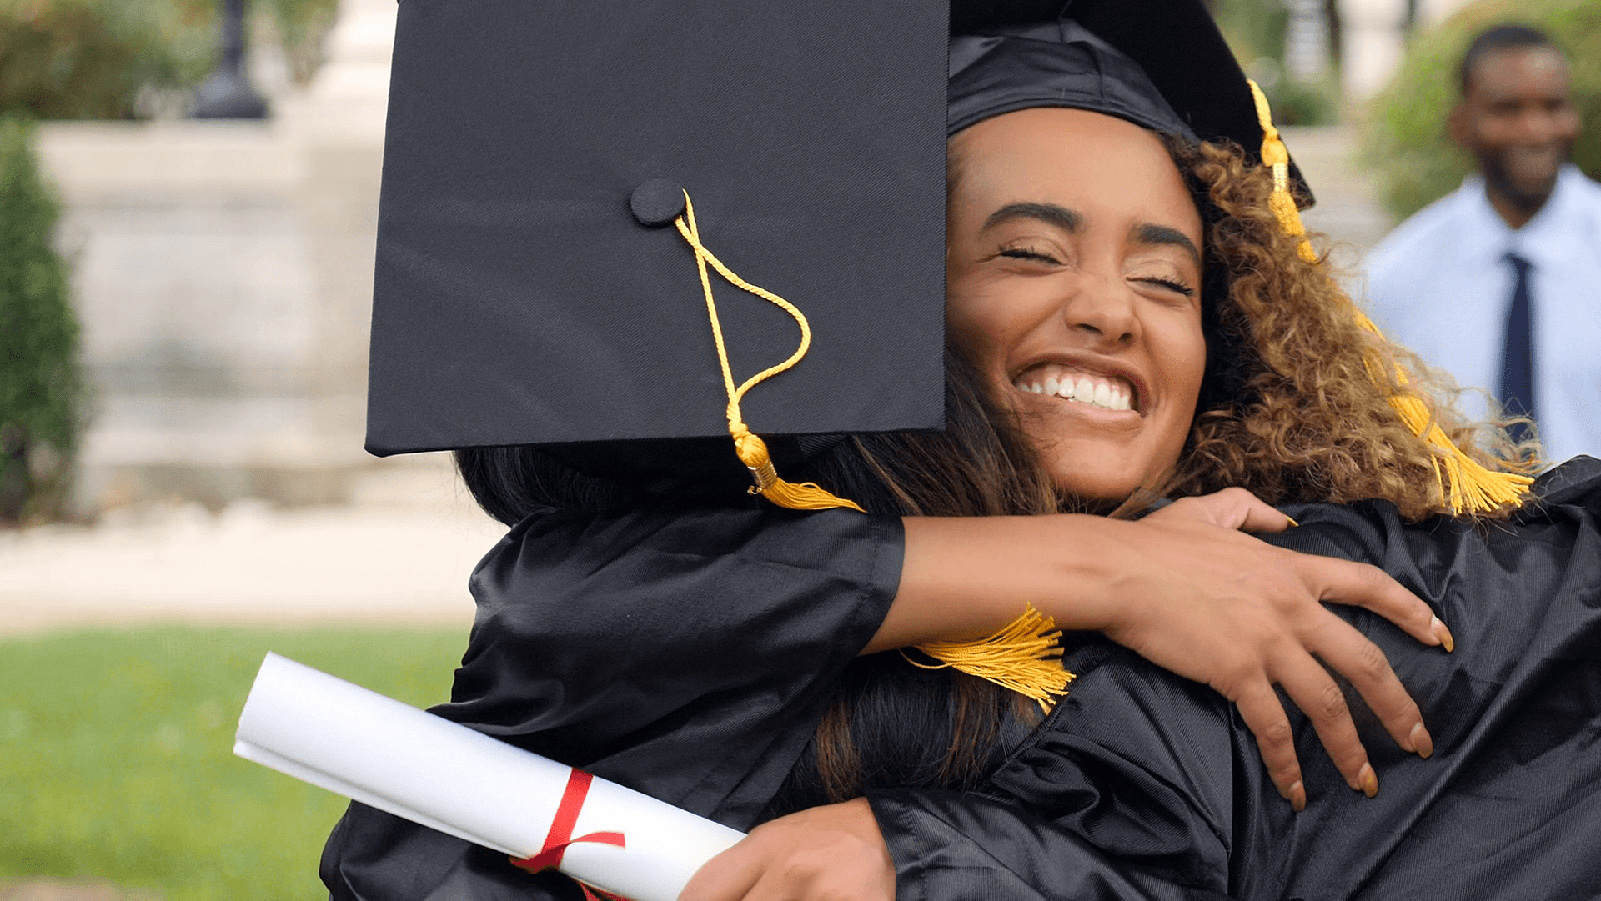 Two college graduates hugging in their caps and gowns.